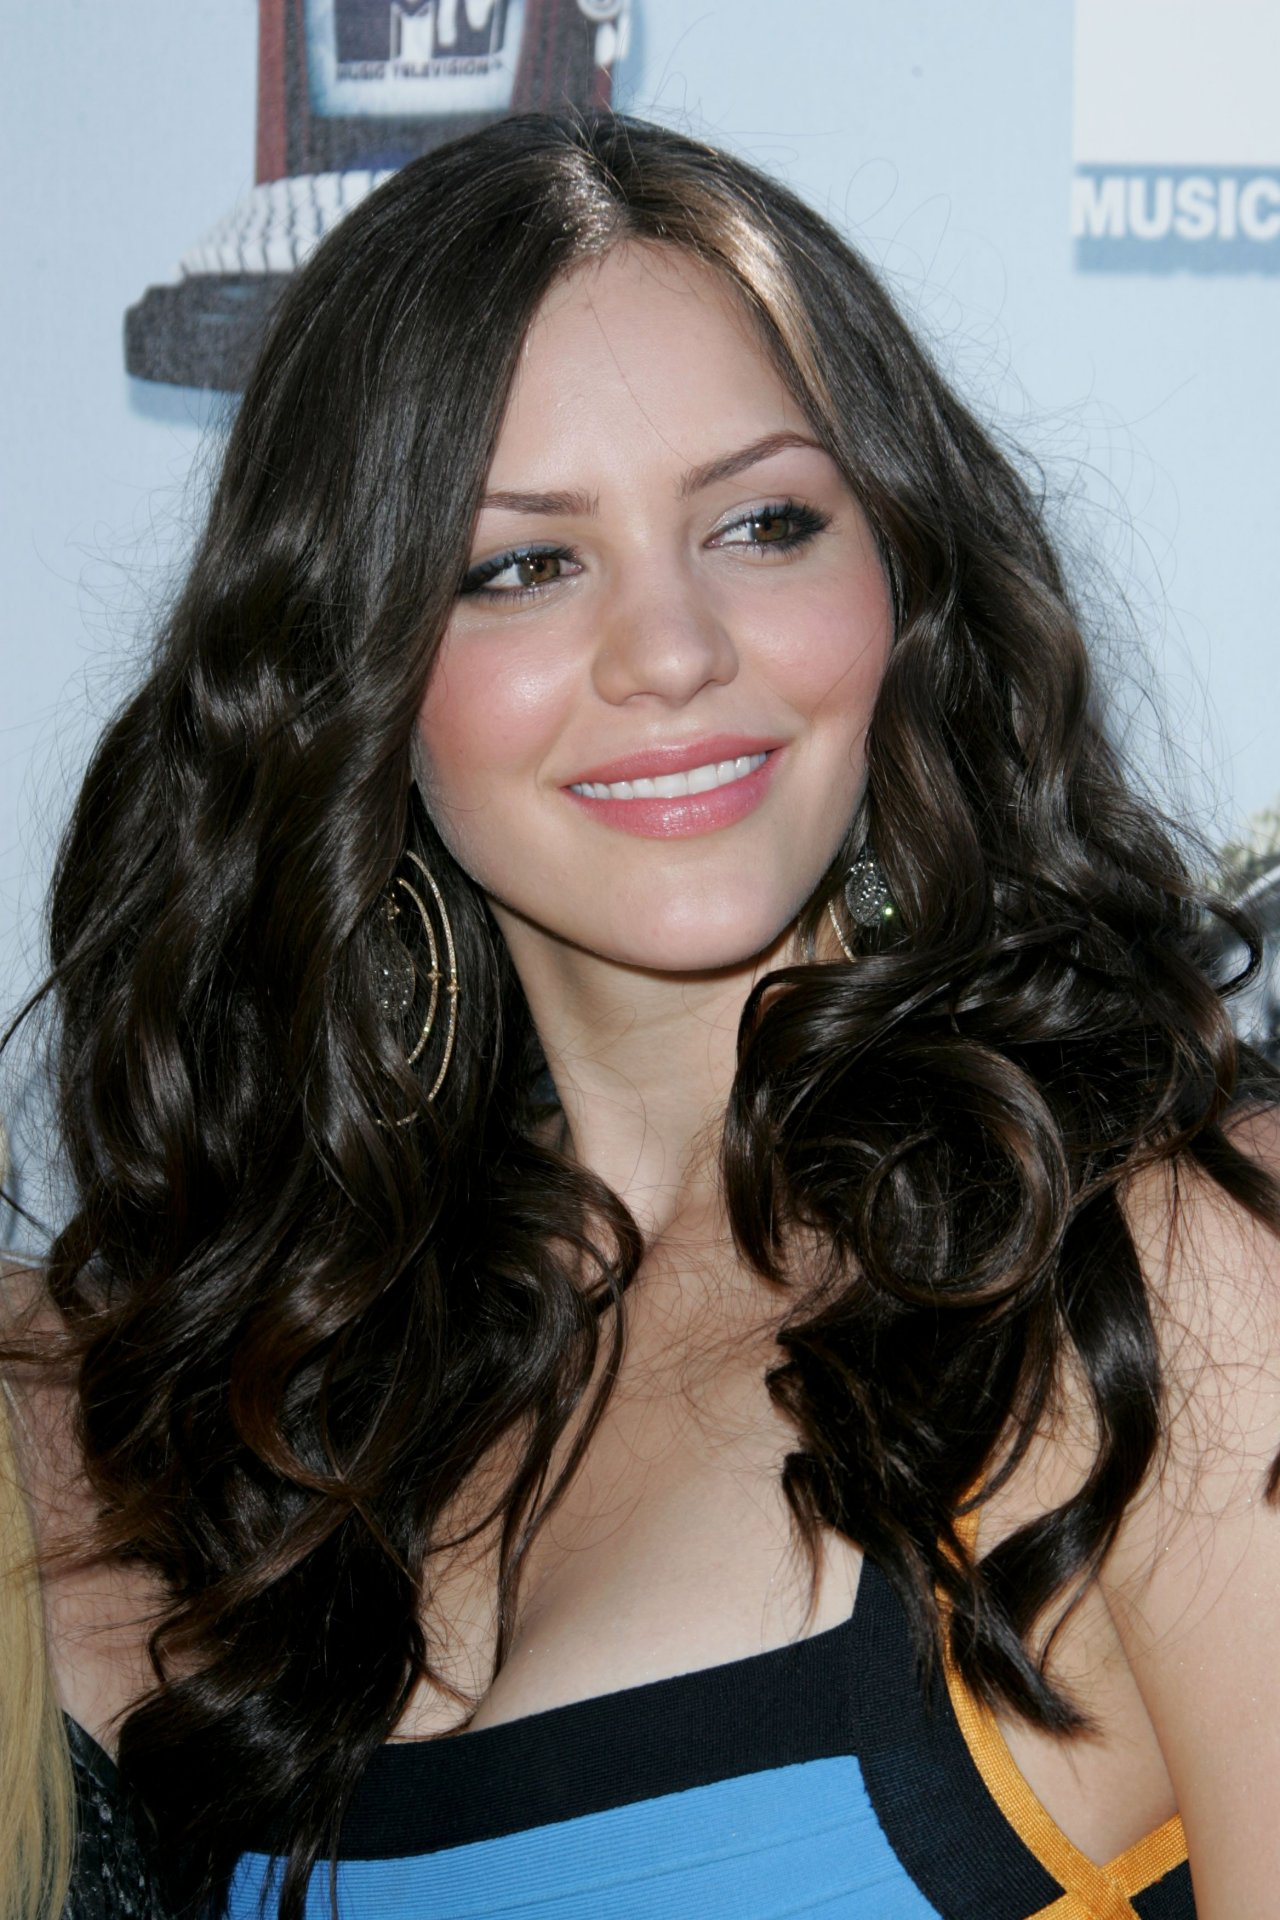 Pin katharine mcphee on pinterest